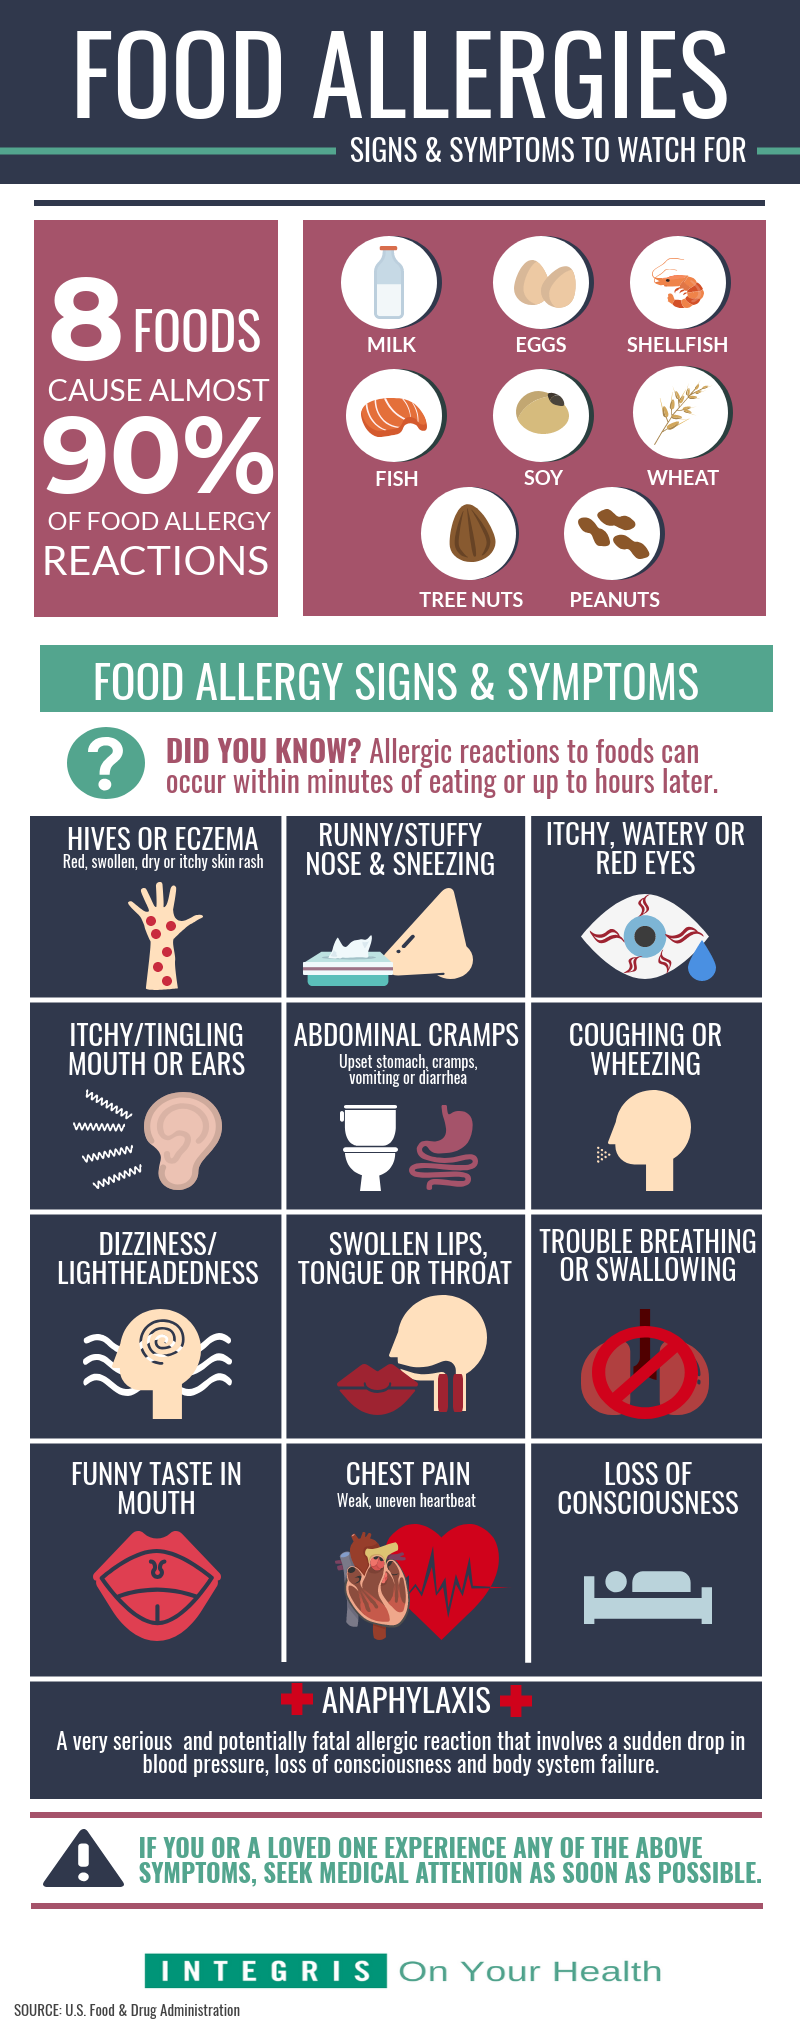 We Re Taking A Look At The Foods That Most Commonly Cause Allergic Reactions The Symptoms That T Food Allergies Food Allergies Awareness Food Allergy Symptoms